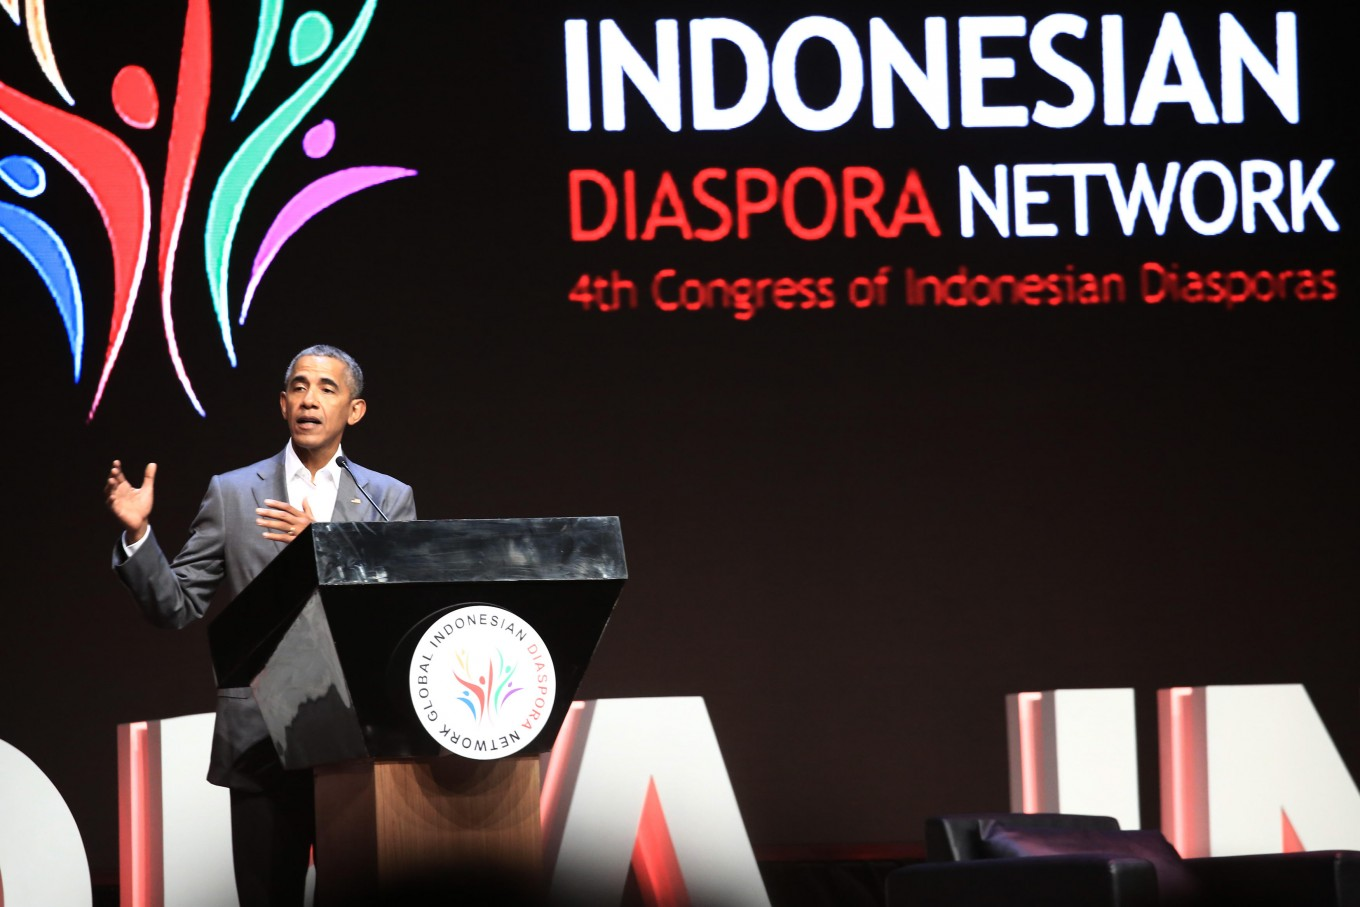 Dual citizenship, rift headline Indonesian diaspora congress